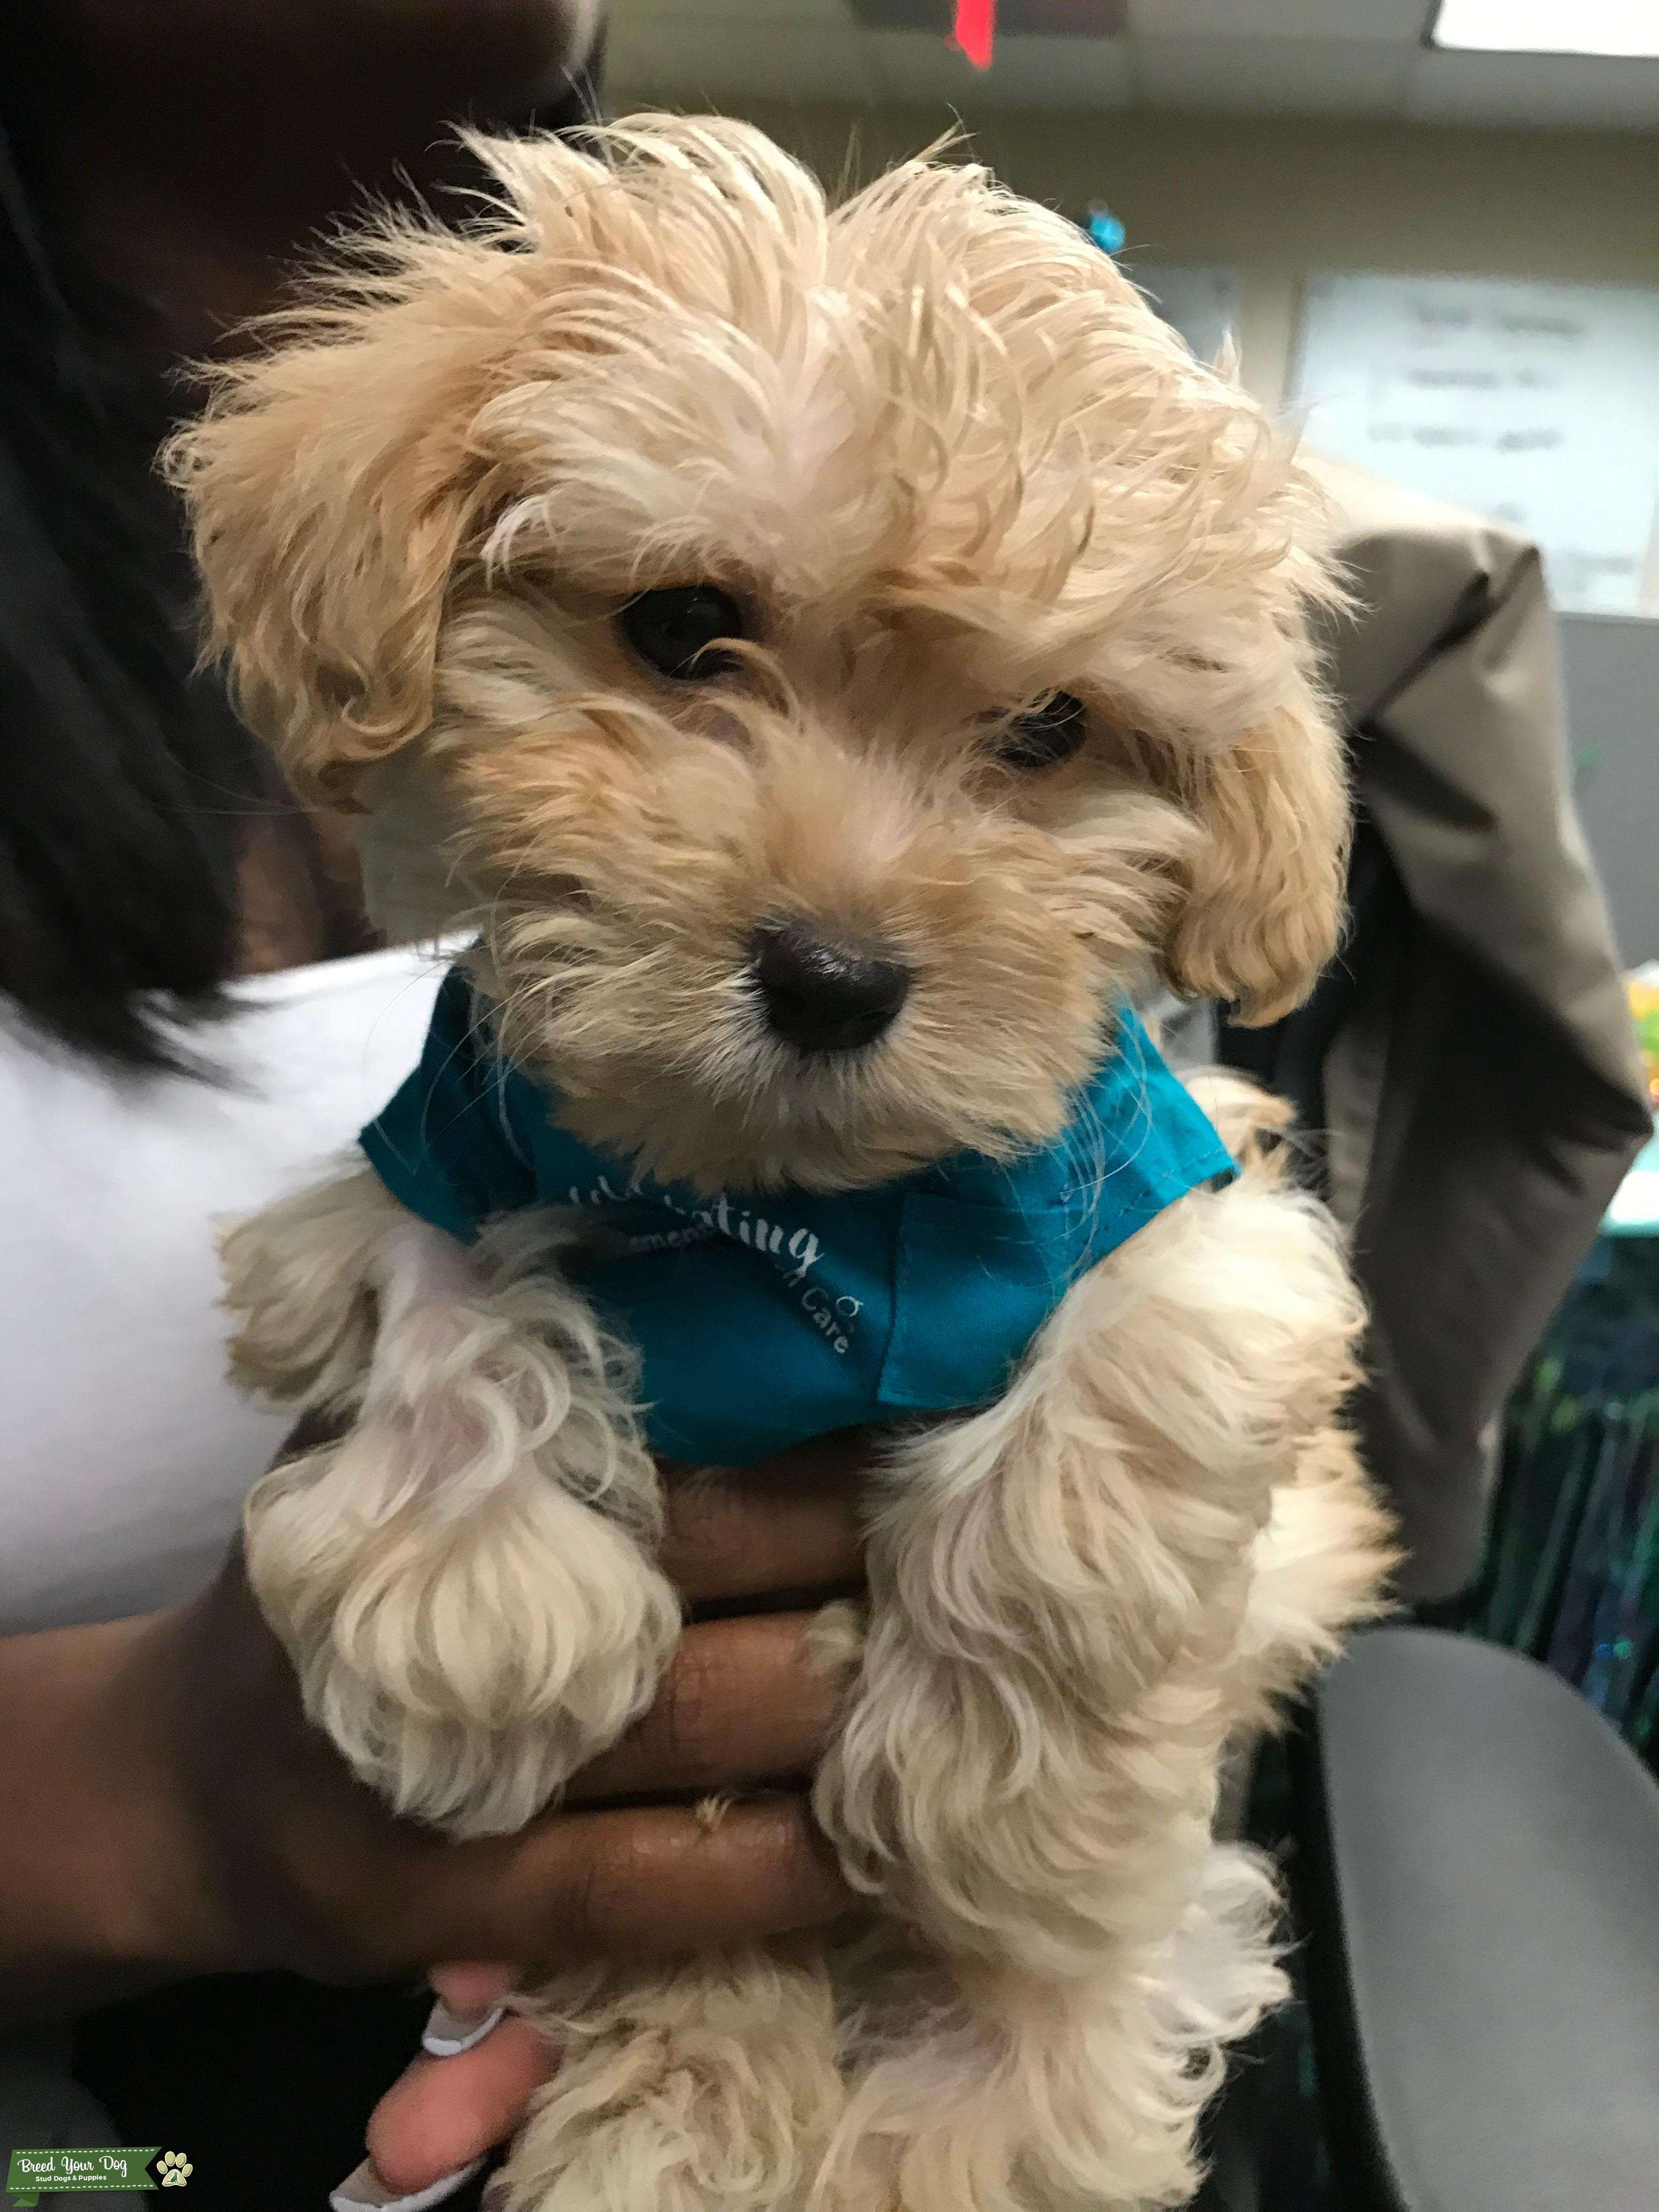 Stud Dog Apricot Maltipoo Male Looking To Stud Breed Your Dog